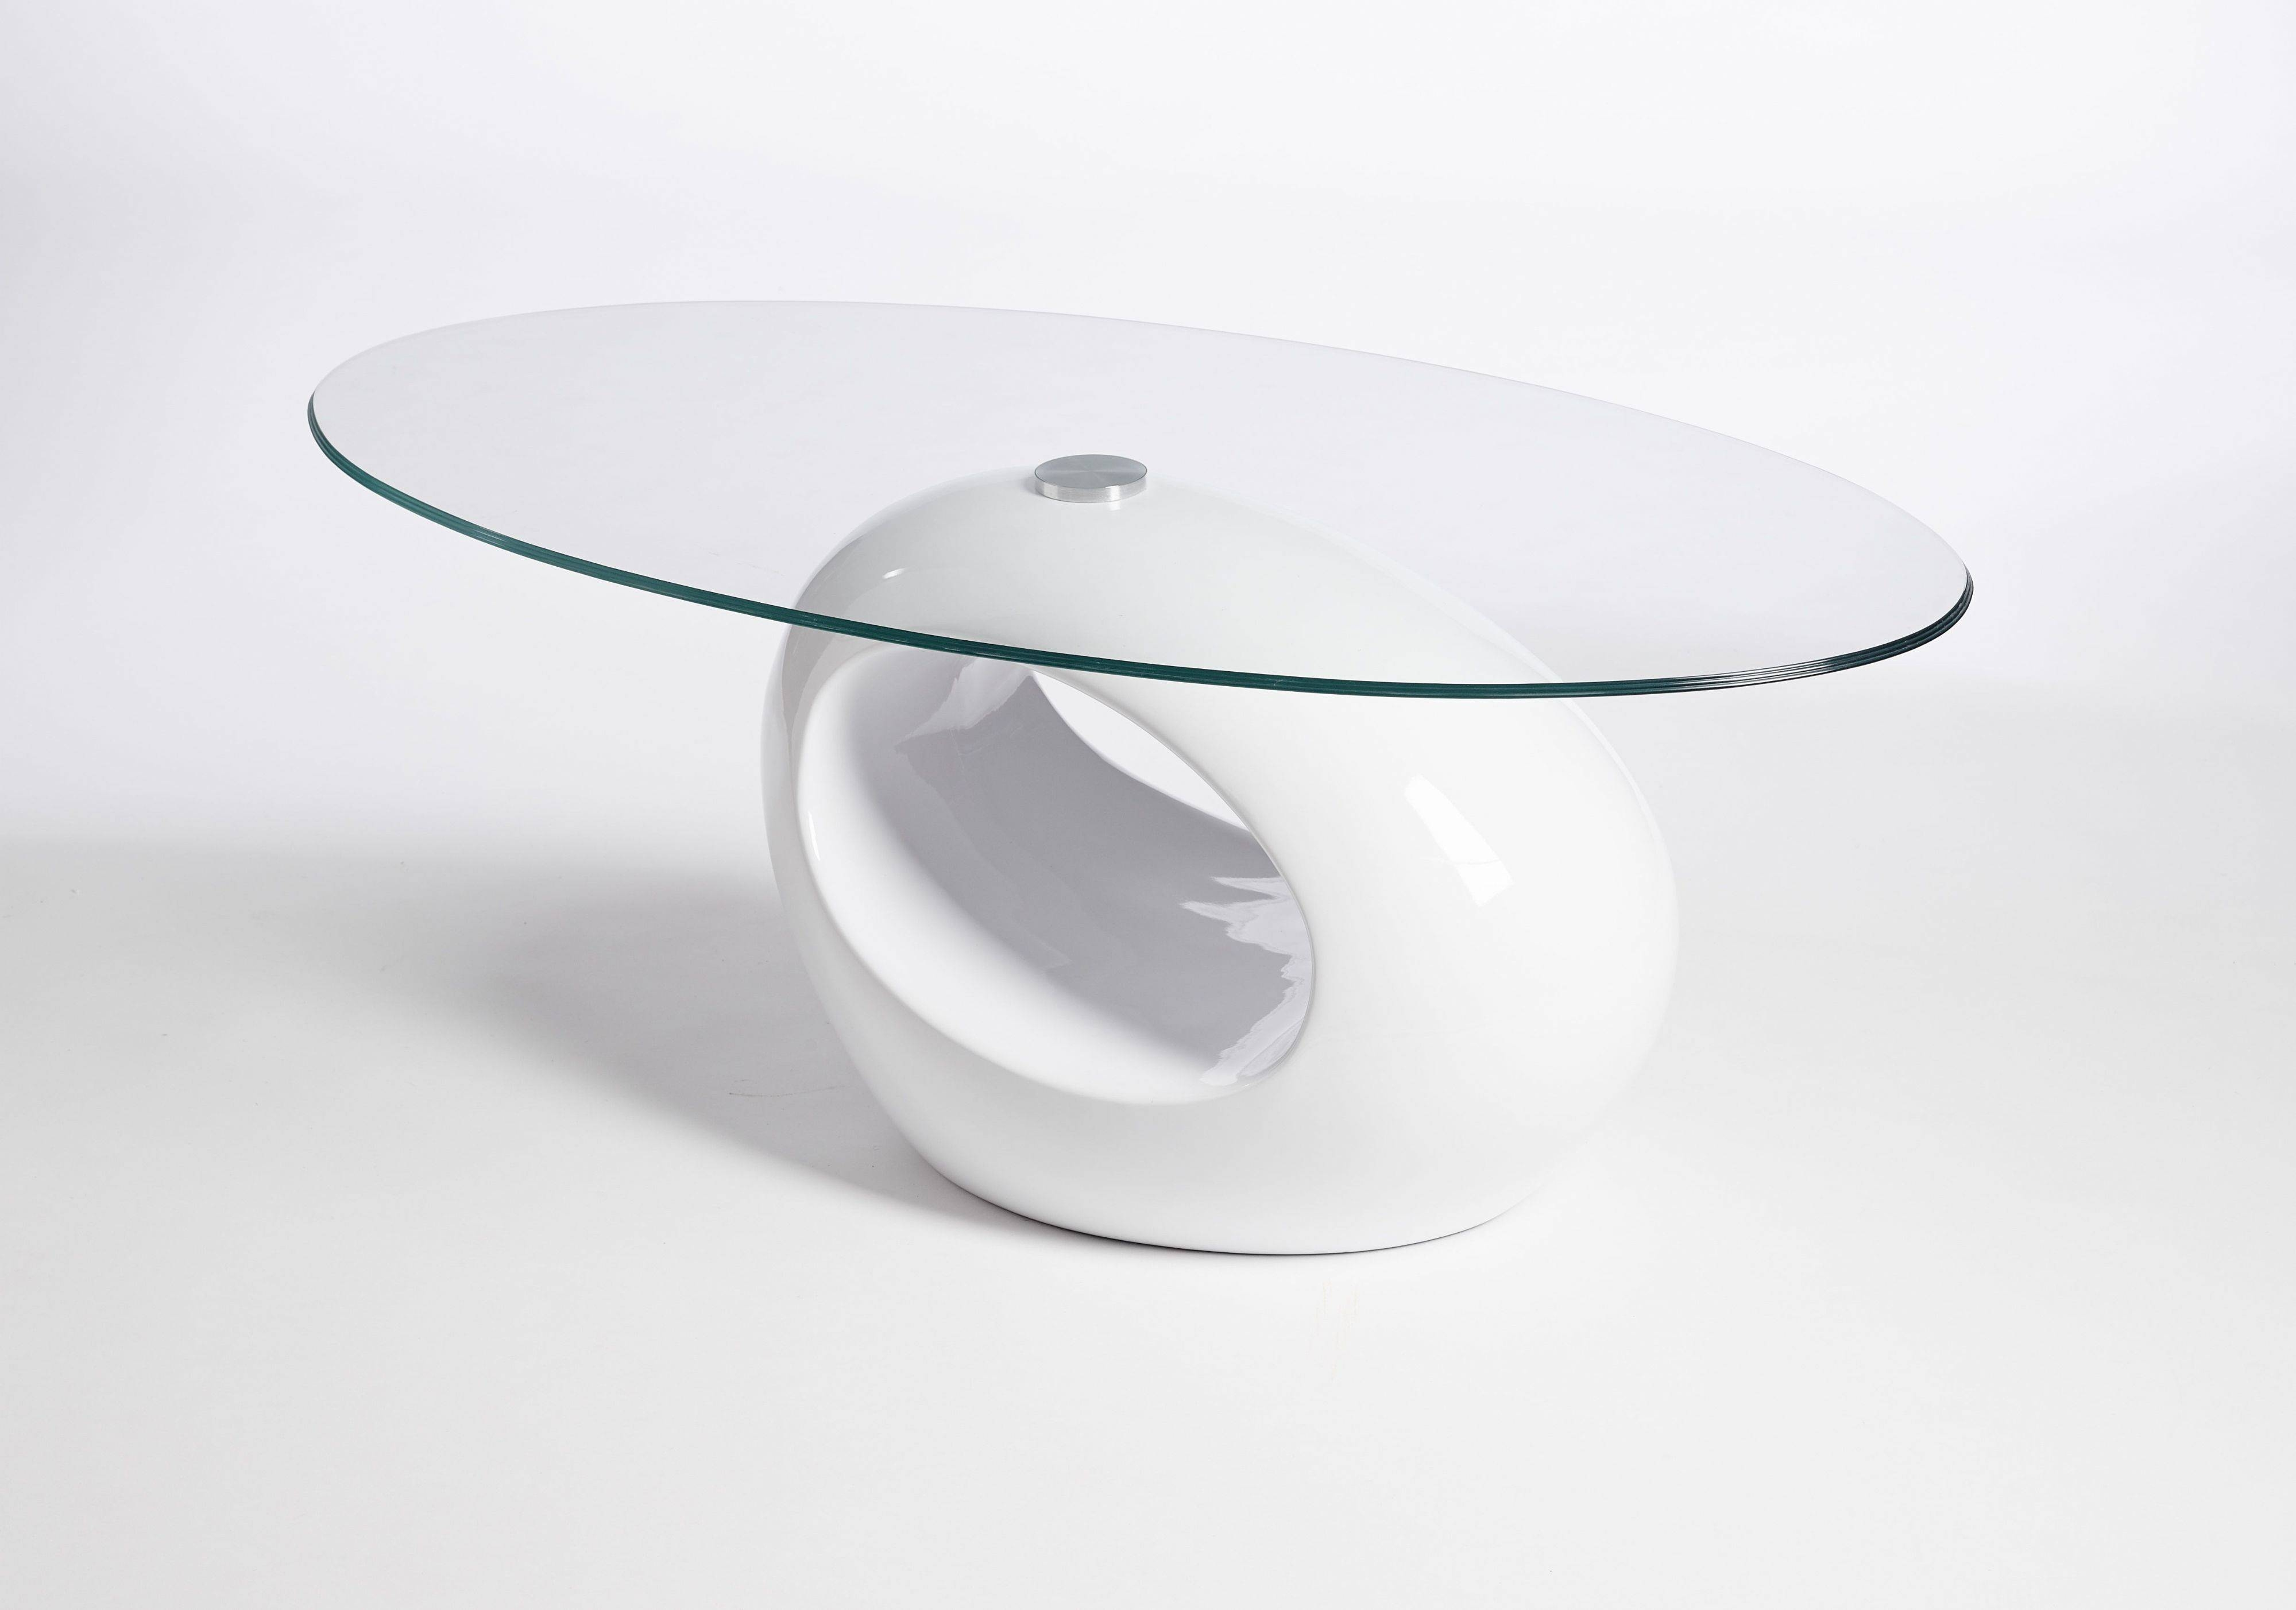 Retro Designed Oval Coffee Table (Black Clear) | Ukcoffeetables inside White Retro Coffee Tables (Image 20 of 30)